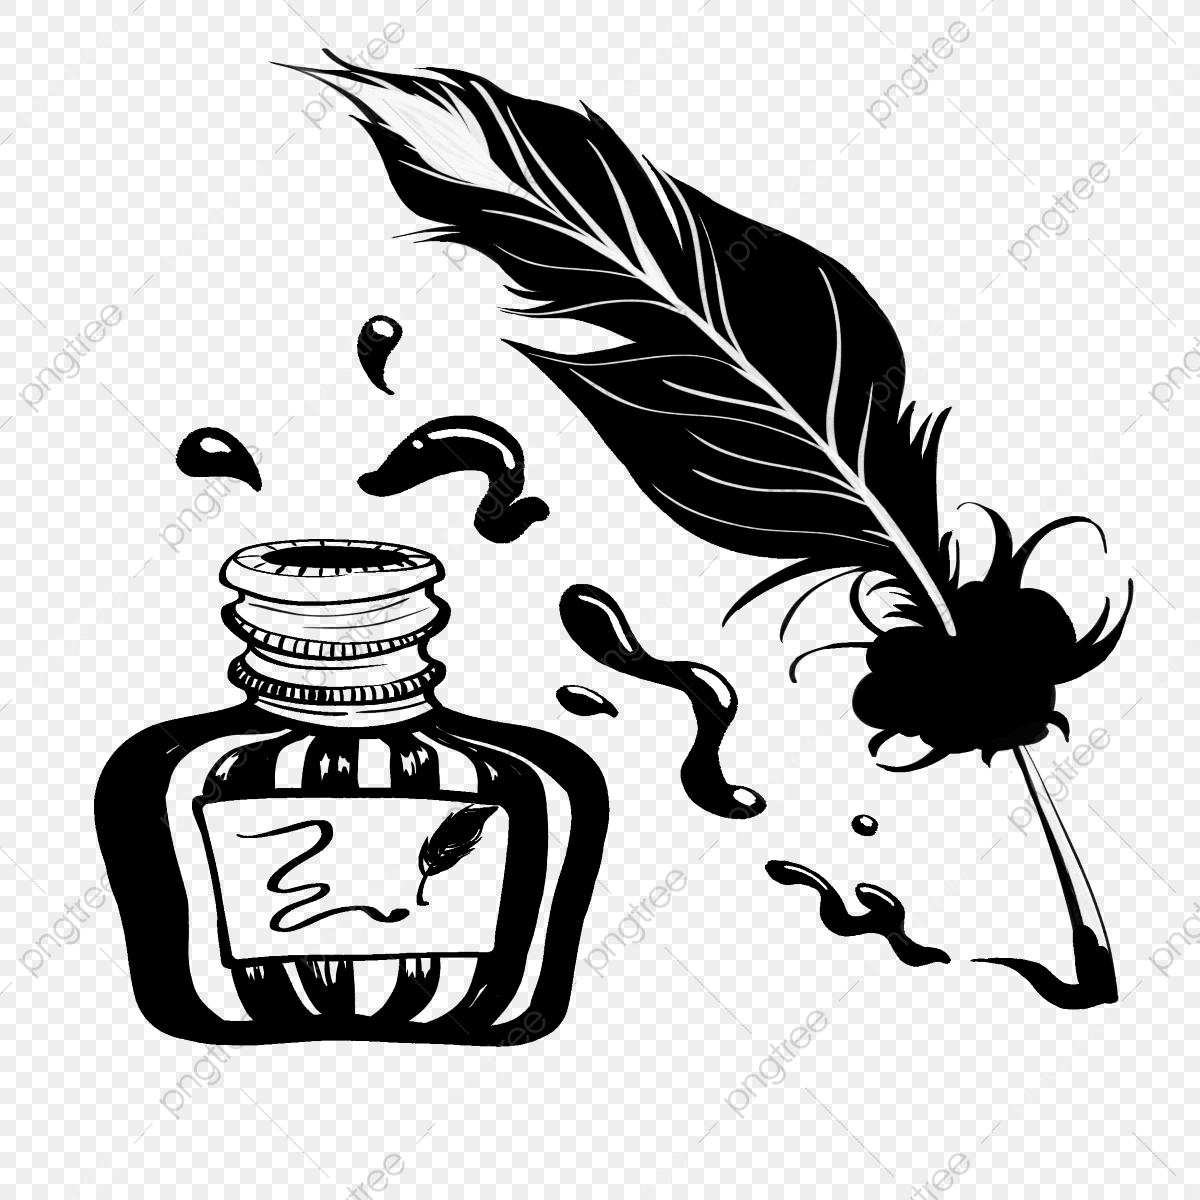 Ink Bottle Png Vector Psd And Clipart With Transparent Background For Free Download Pngtree